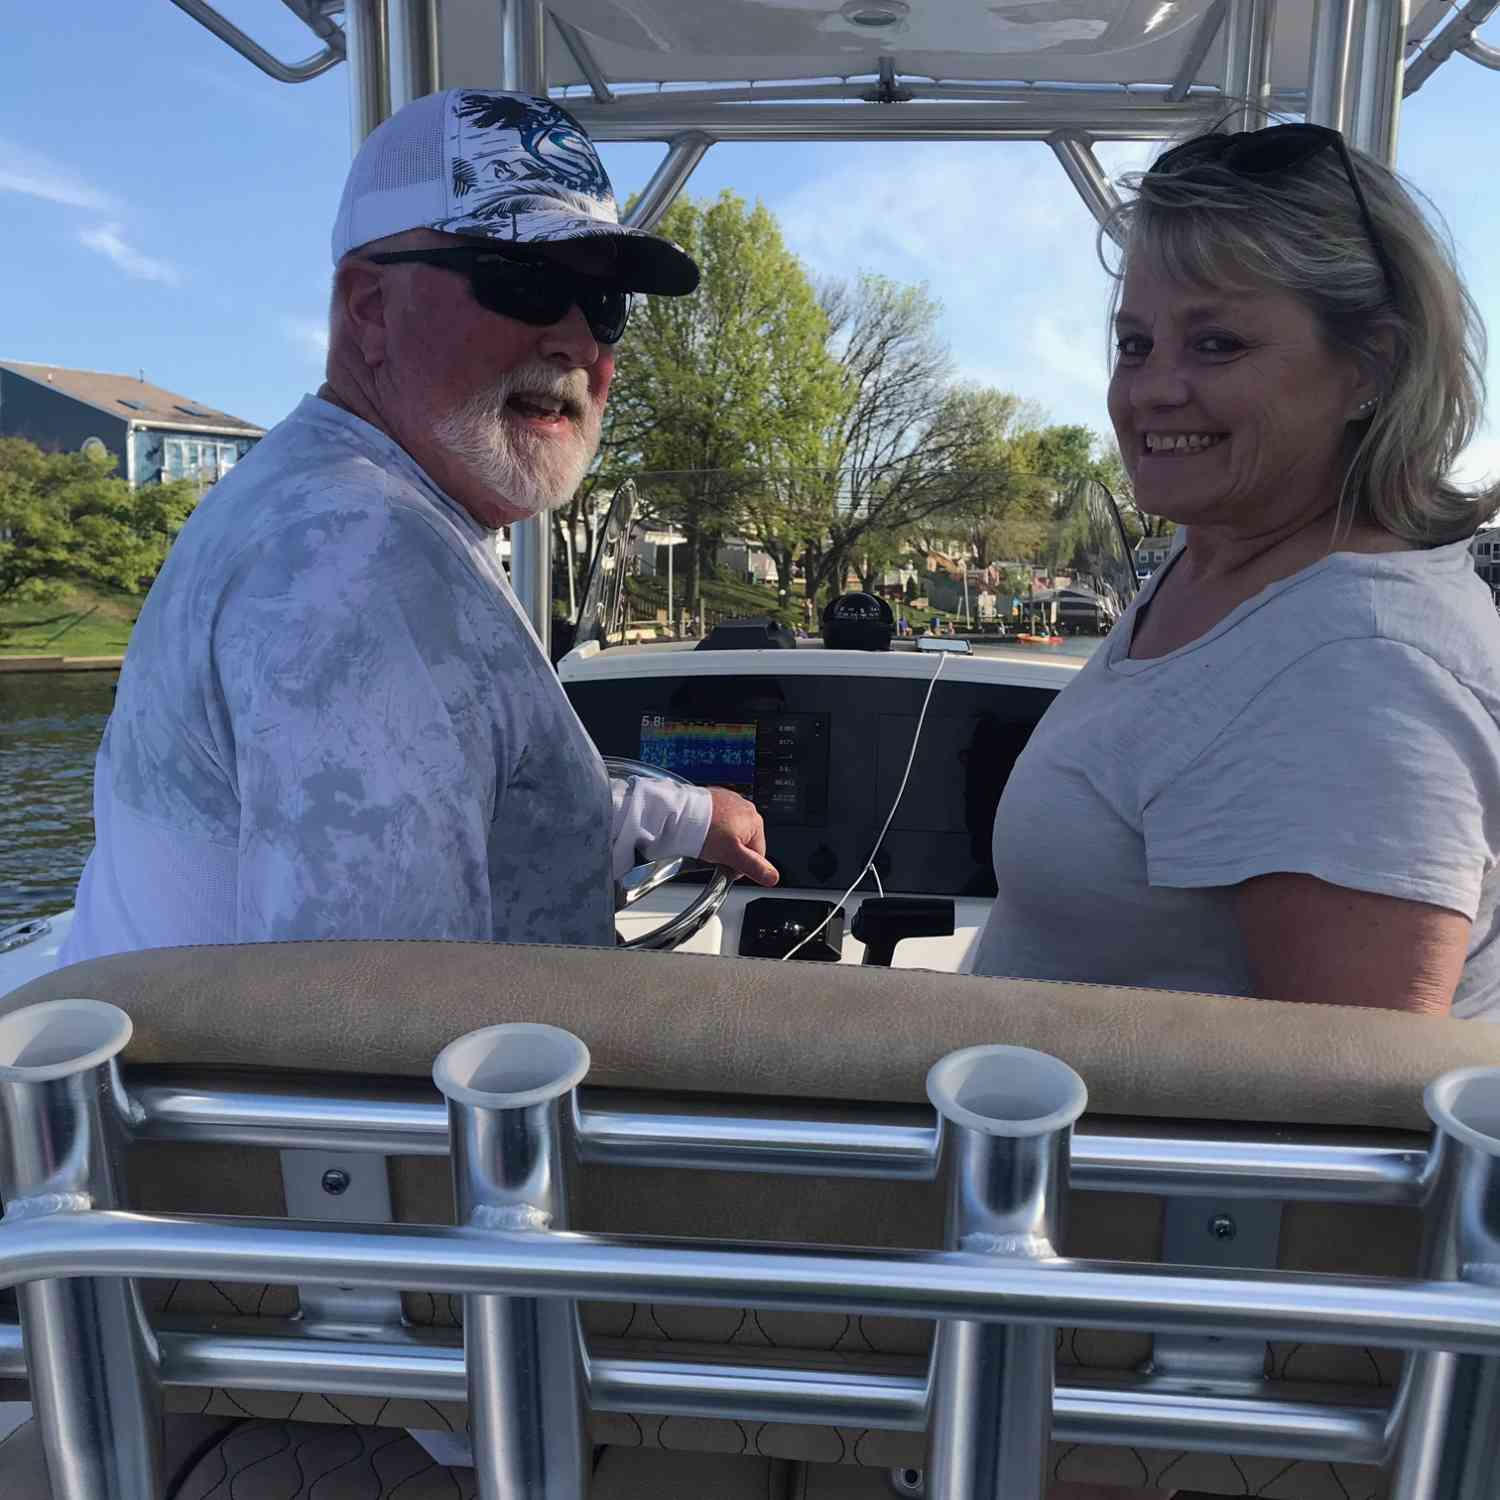 Title: happy wife- happy life - On board their Sportsman Open 232 Center Console - Location: Joppatowne Md.. Participating in the Photo Contest #SportsmanJanuary2021